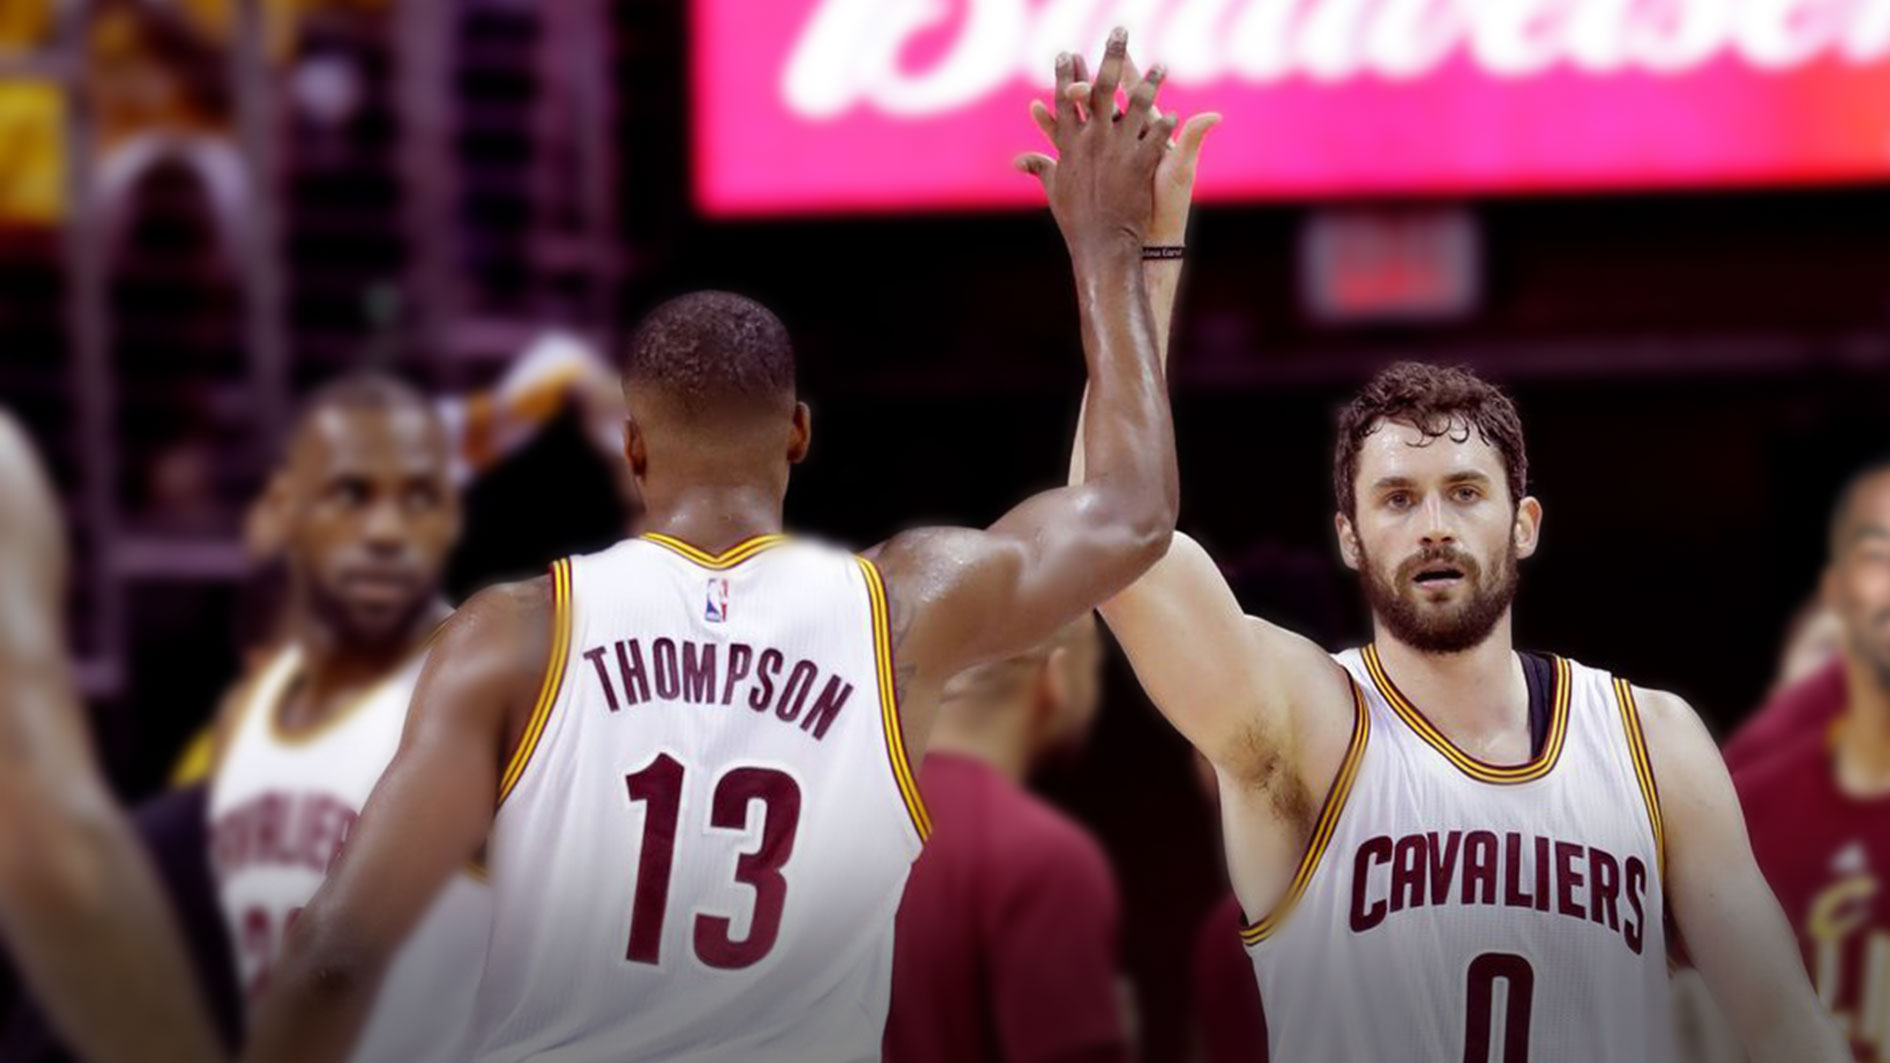 Will Cavaliers deal Thompson if they reach Playoffs